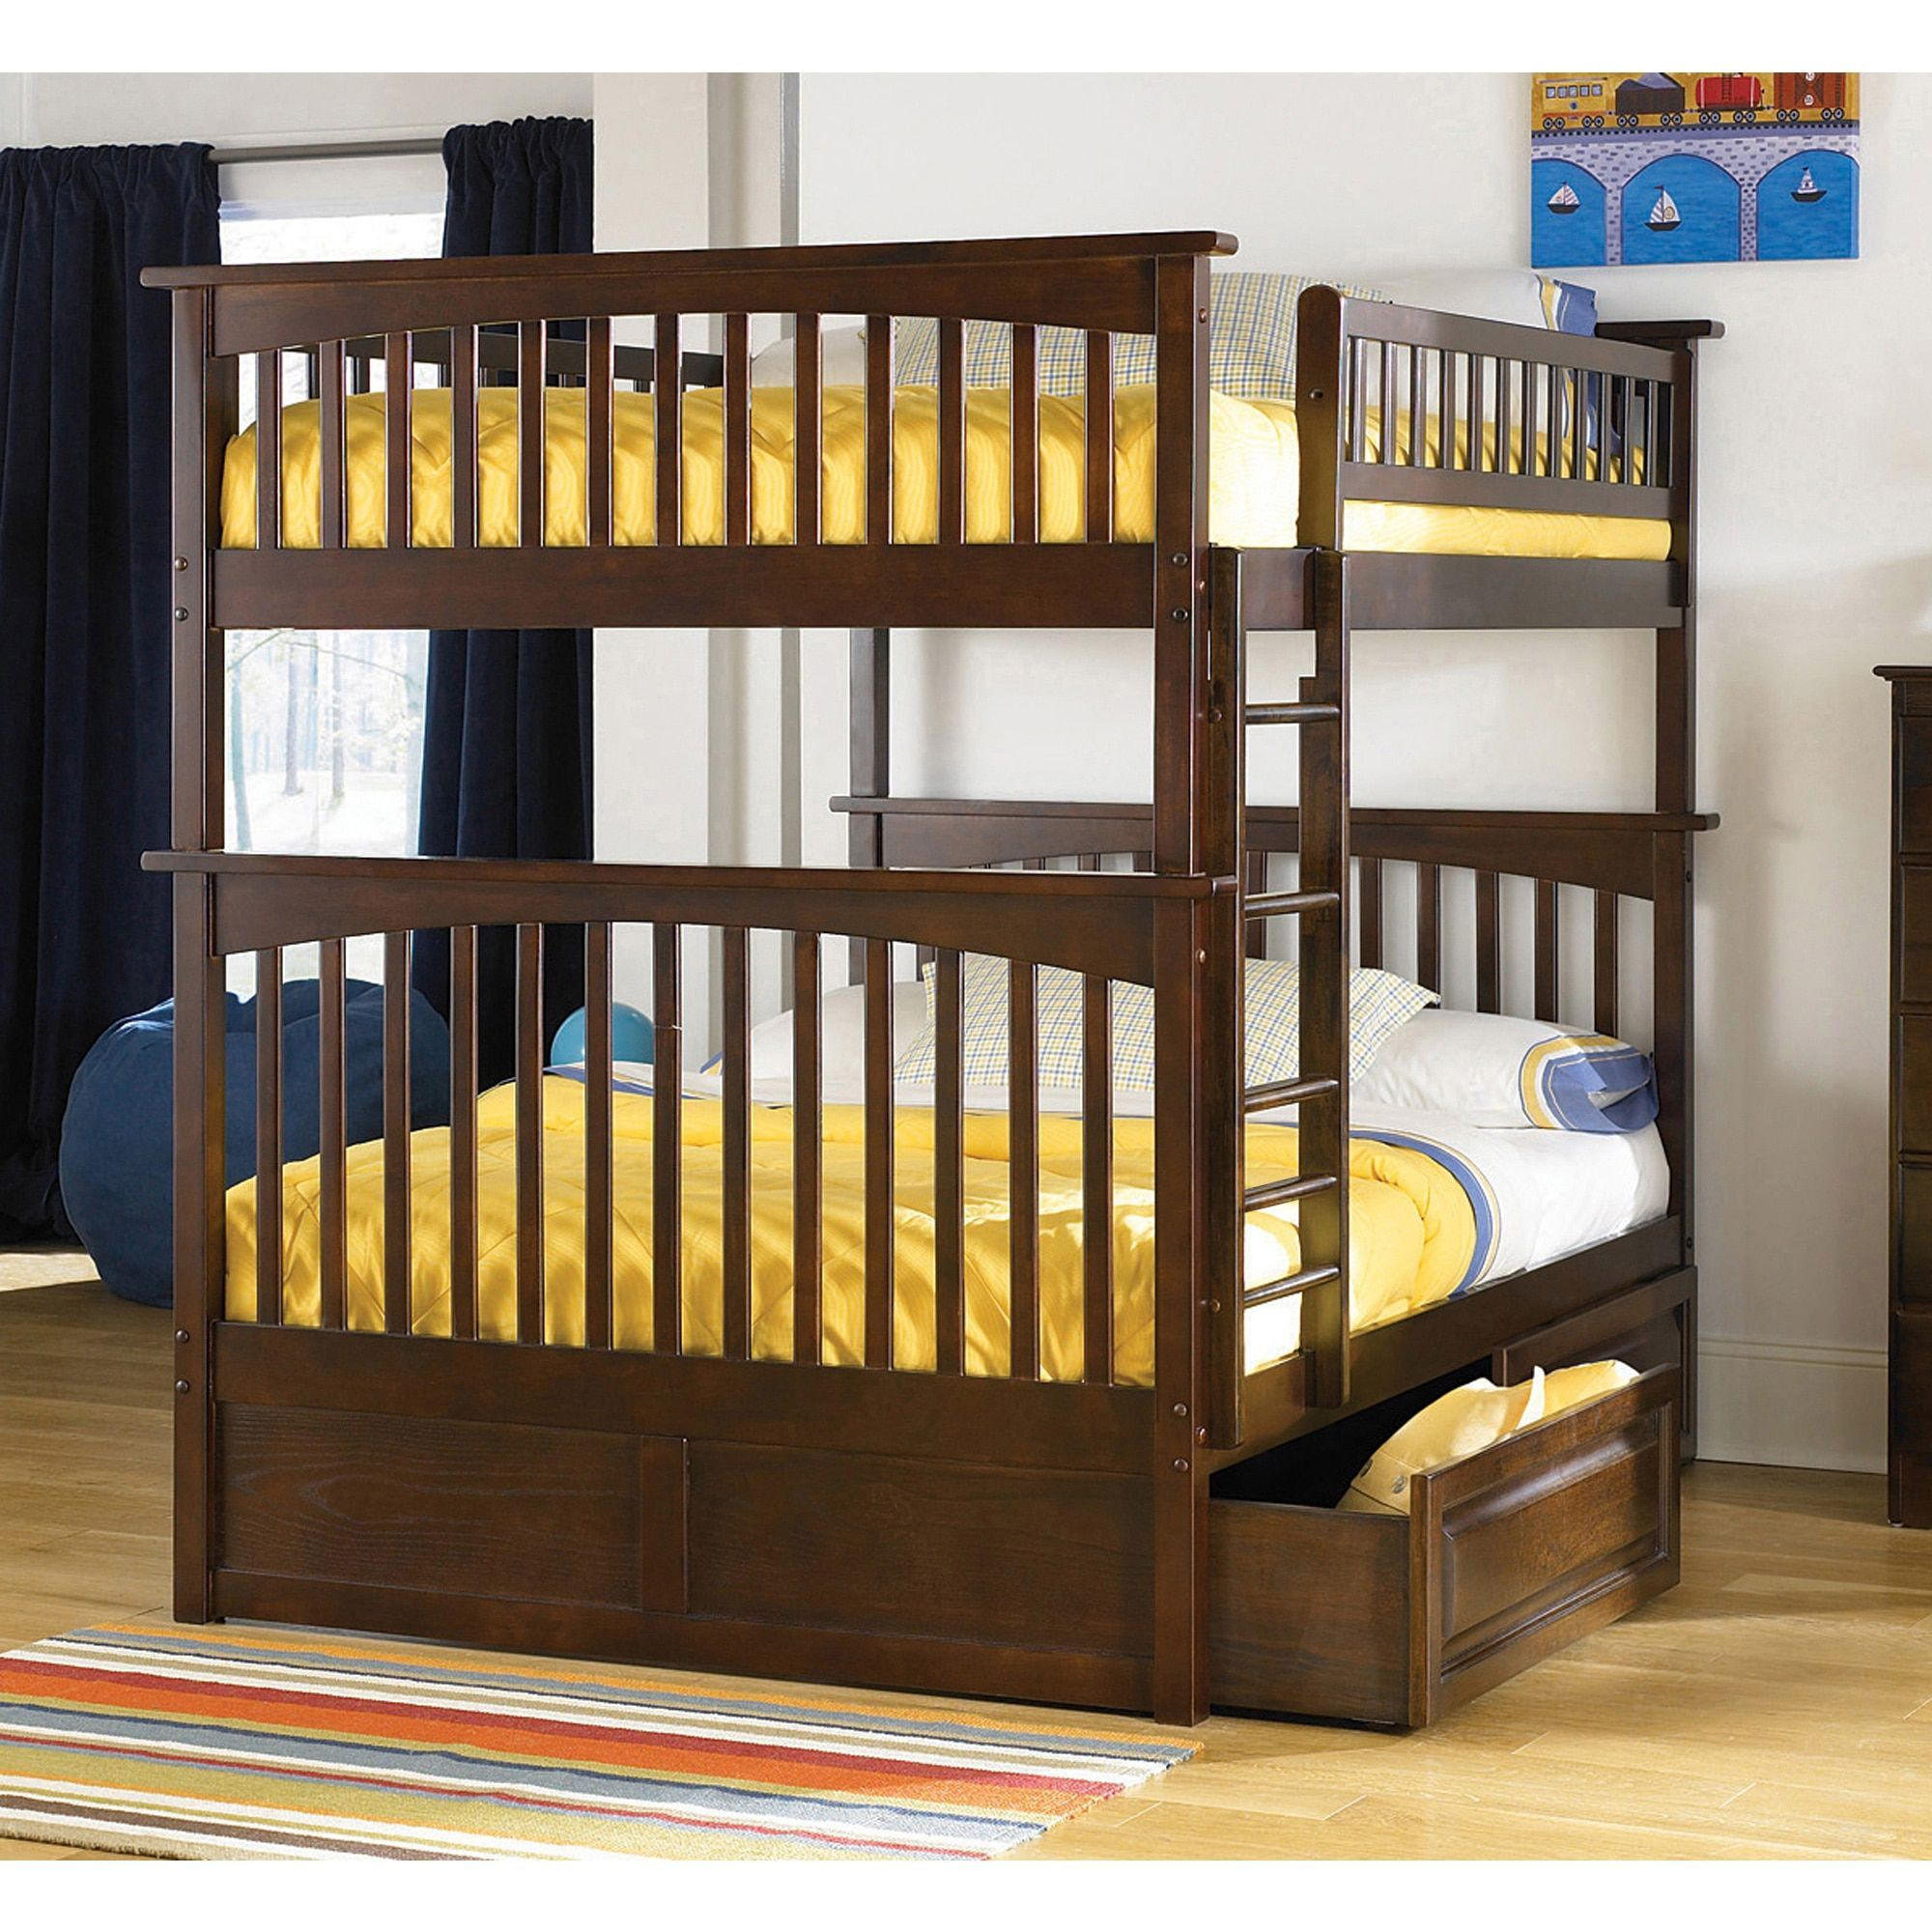 Atlantic Furniture Columbia Bunk Bed Full Over Full With Raised